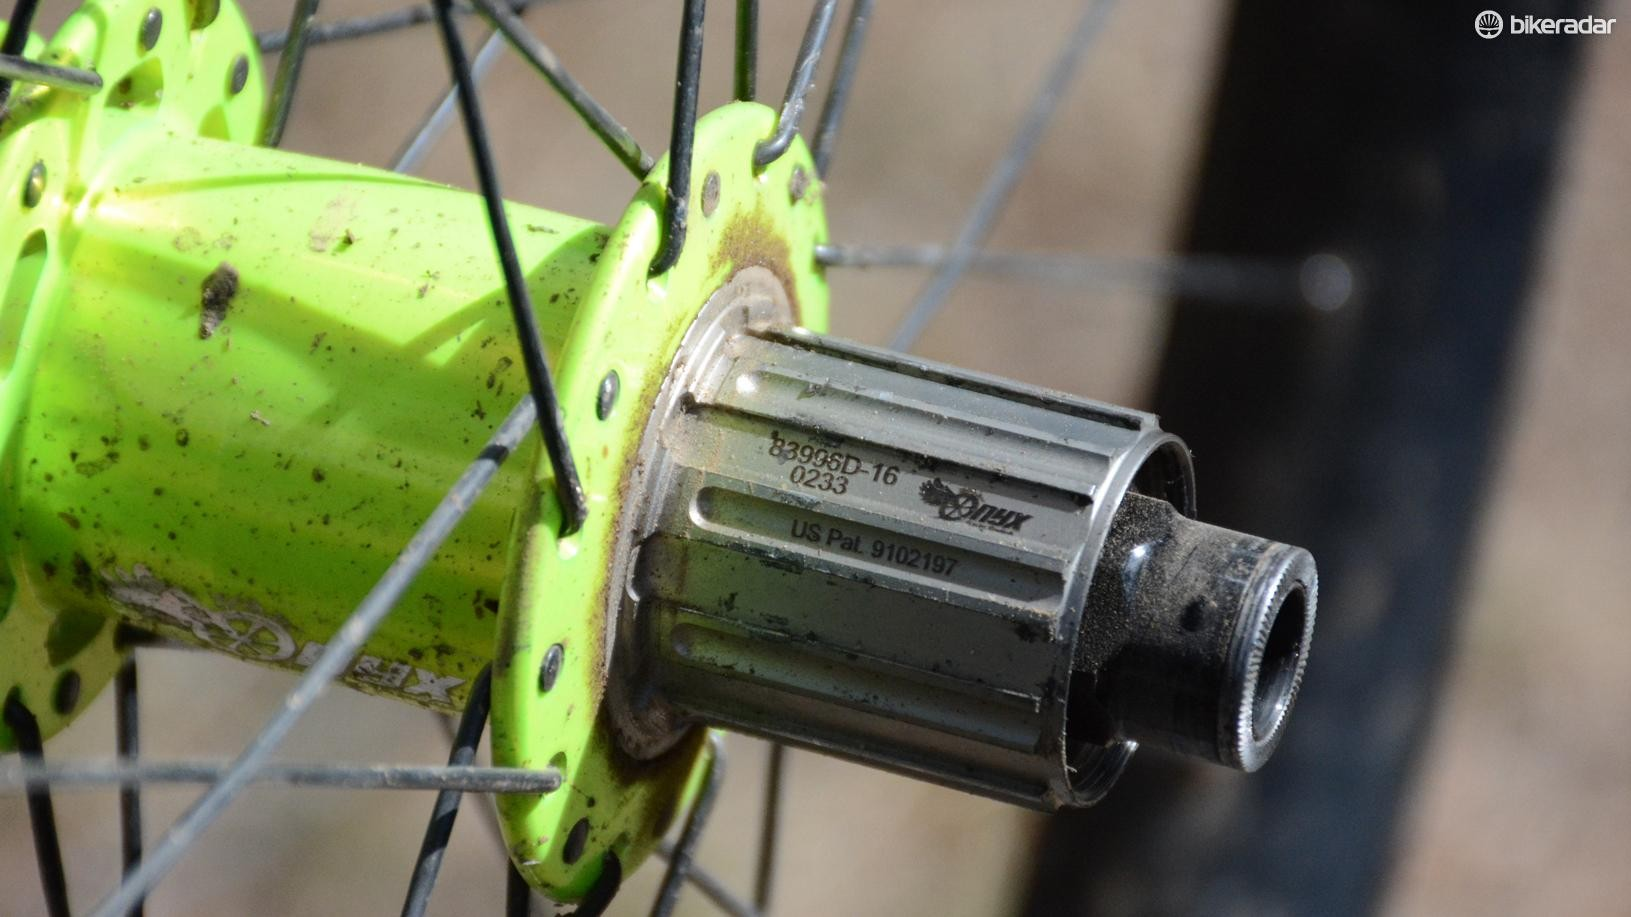 While a little dirty the freehub is decidedly bite free and the cassette came off smoothly